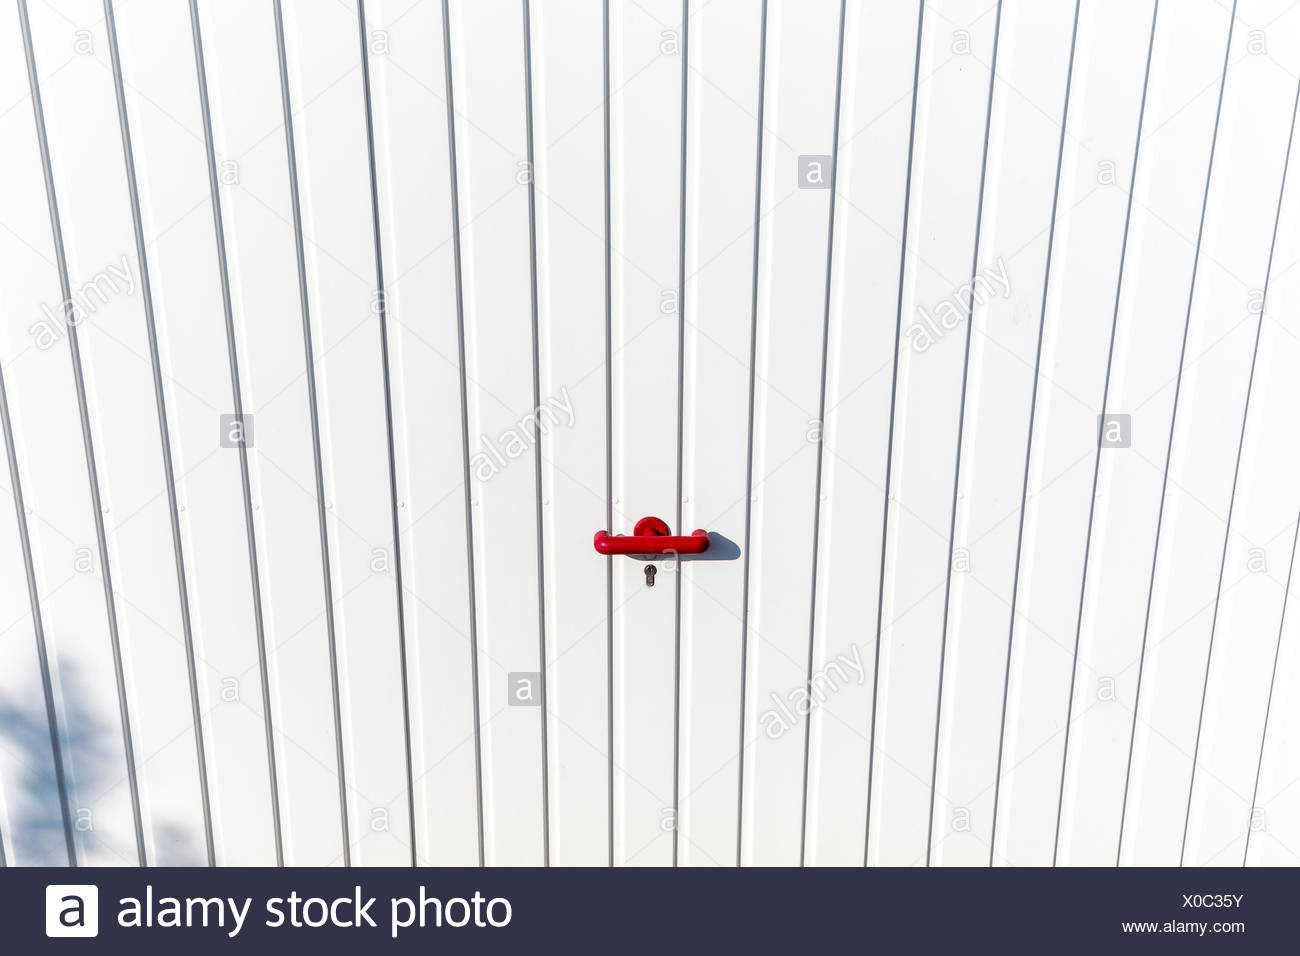 Locked Door At A Parking Garage With Red Handle Stock Photo